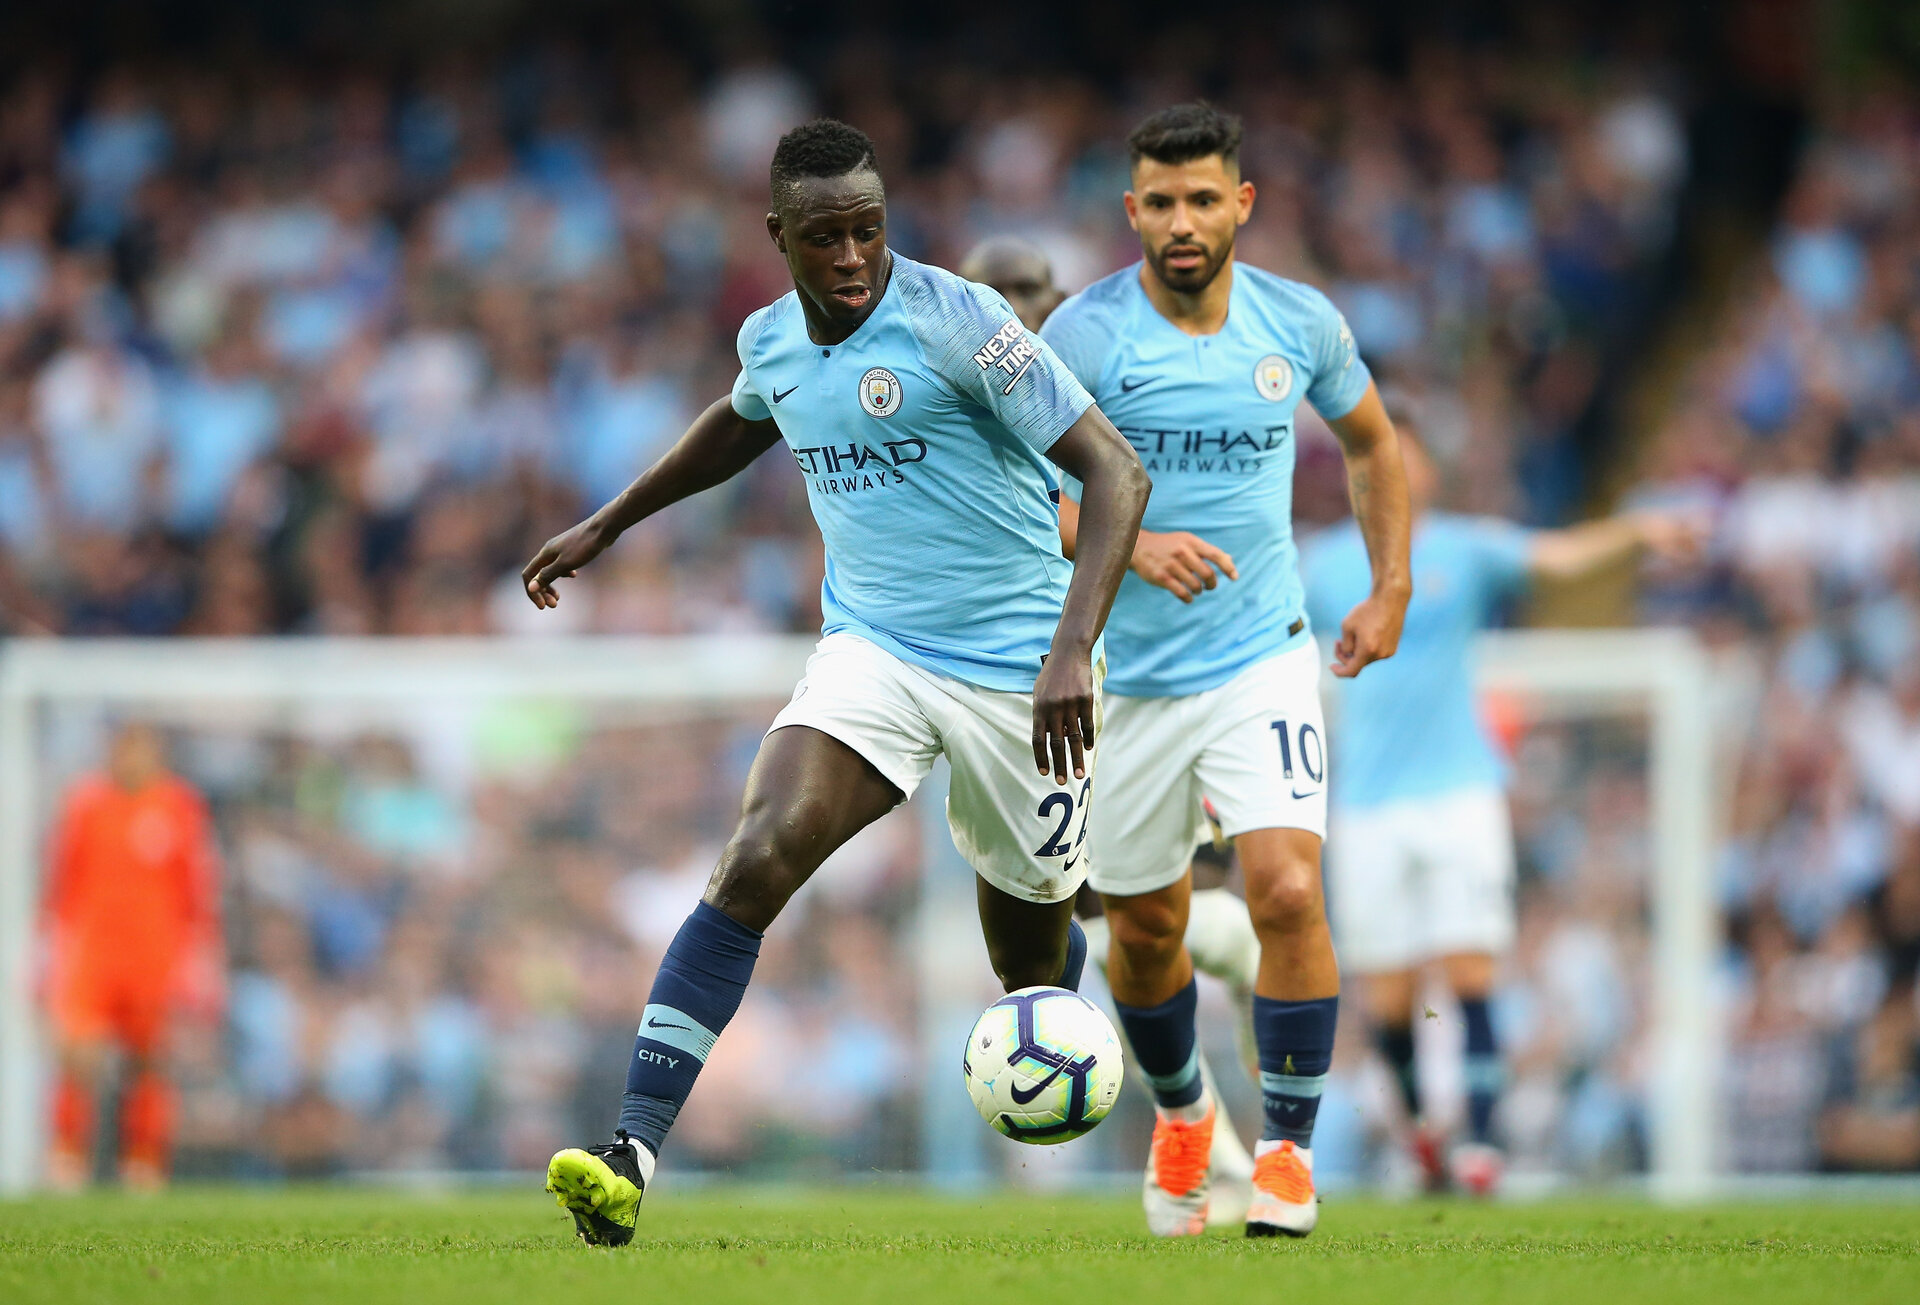 MANCHESTER, ENGLAND - SEPTEMBER 01:  Benjamin Mendy of Manchester City runs with the ball during the Premier League match between Manchester City and Newcastle United at Etihad Stadium on September 1, 2018 in Manchester, United Kingdom.  (Photo by Alex Livesey/Getty Images)